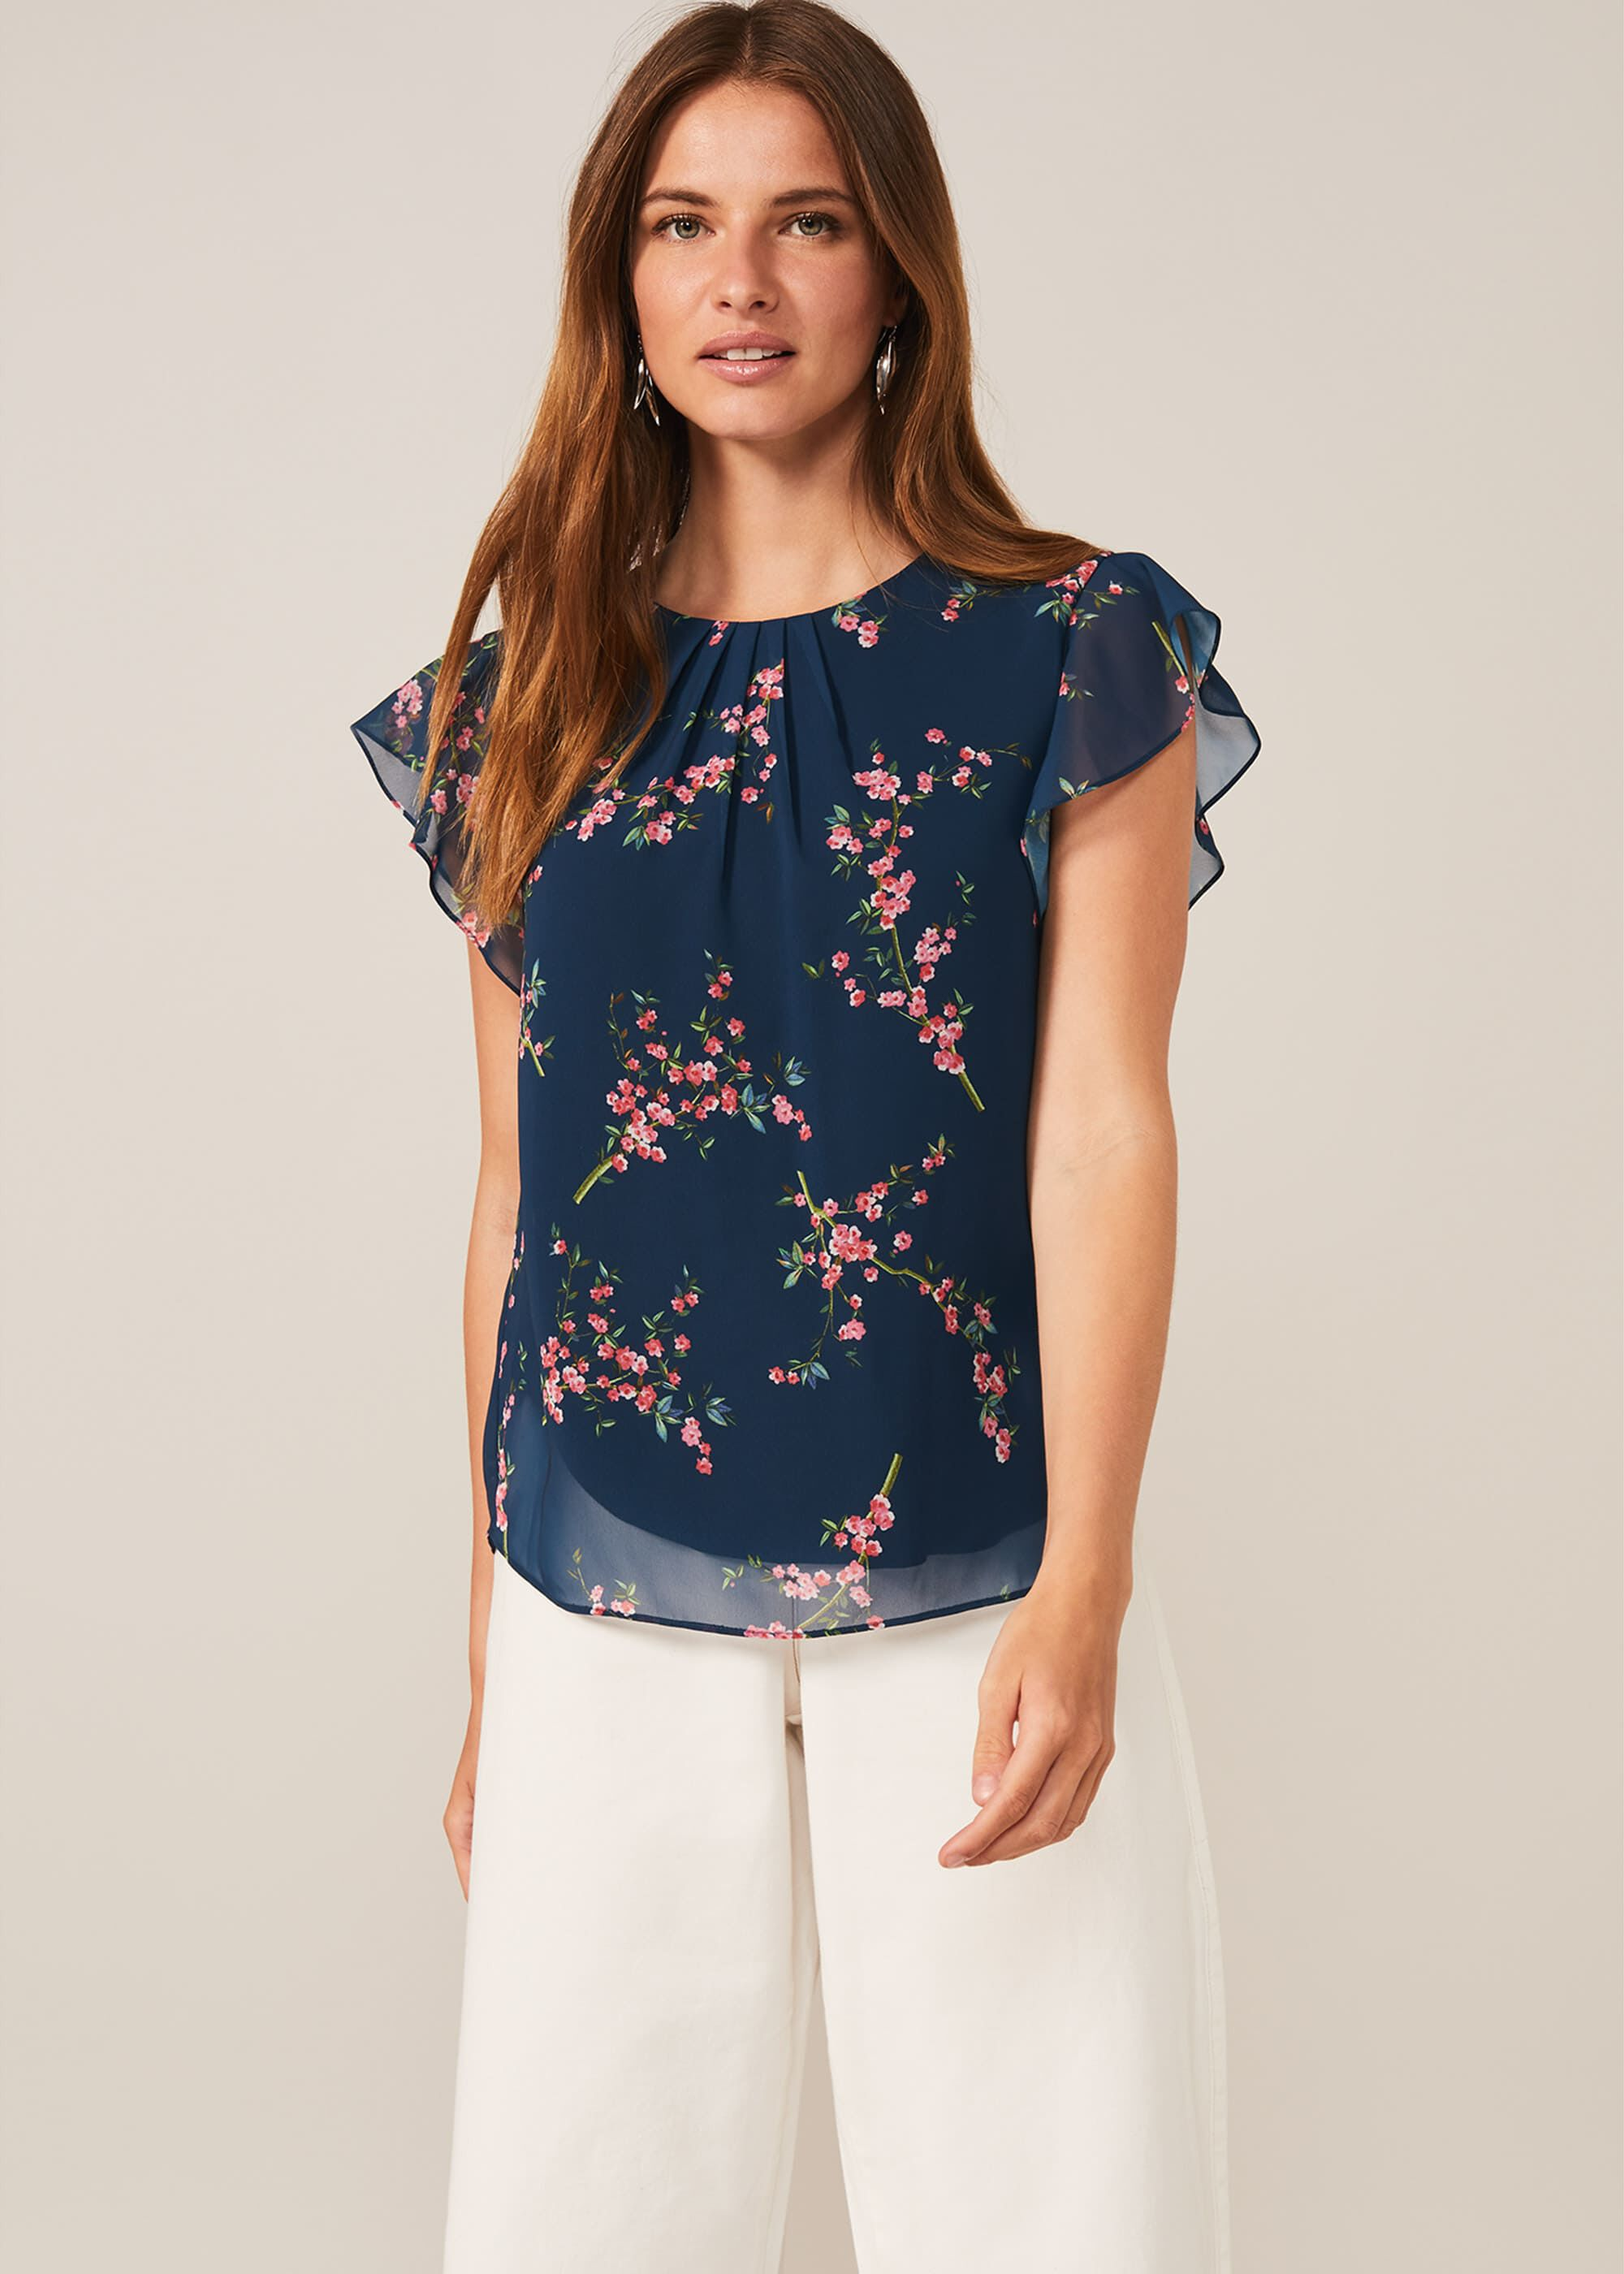 Phase Eight Riley Floral Blouse, Blue, Blouse